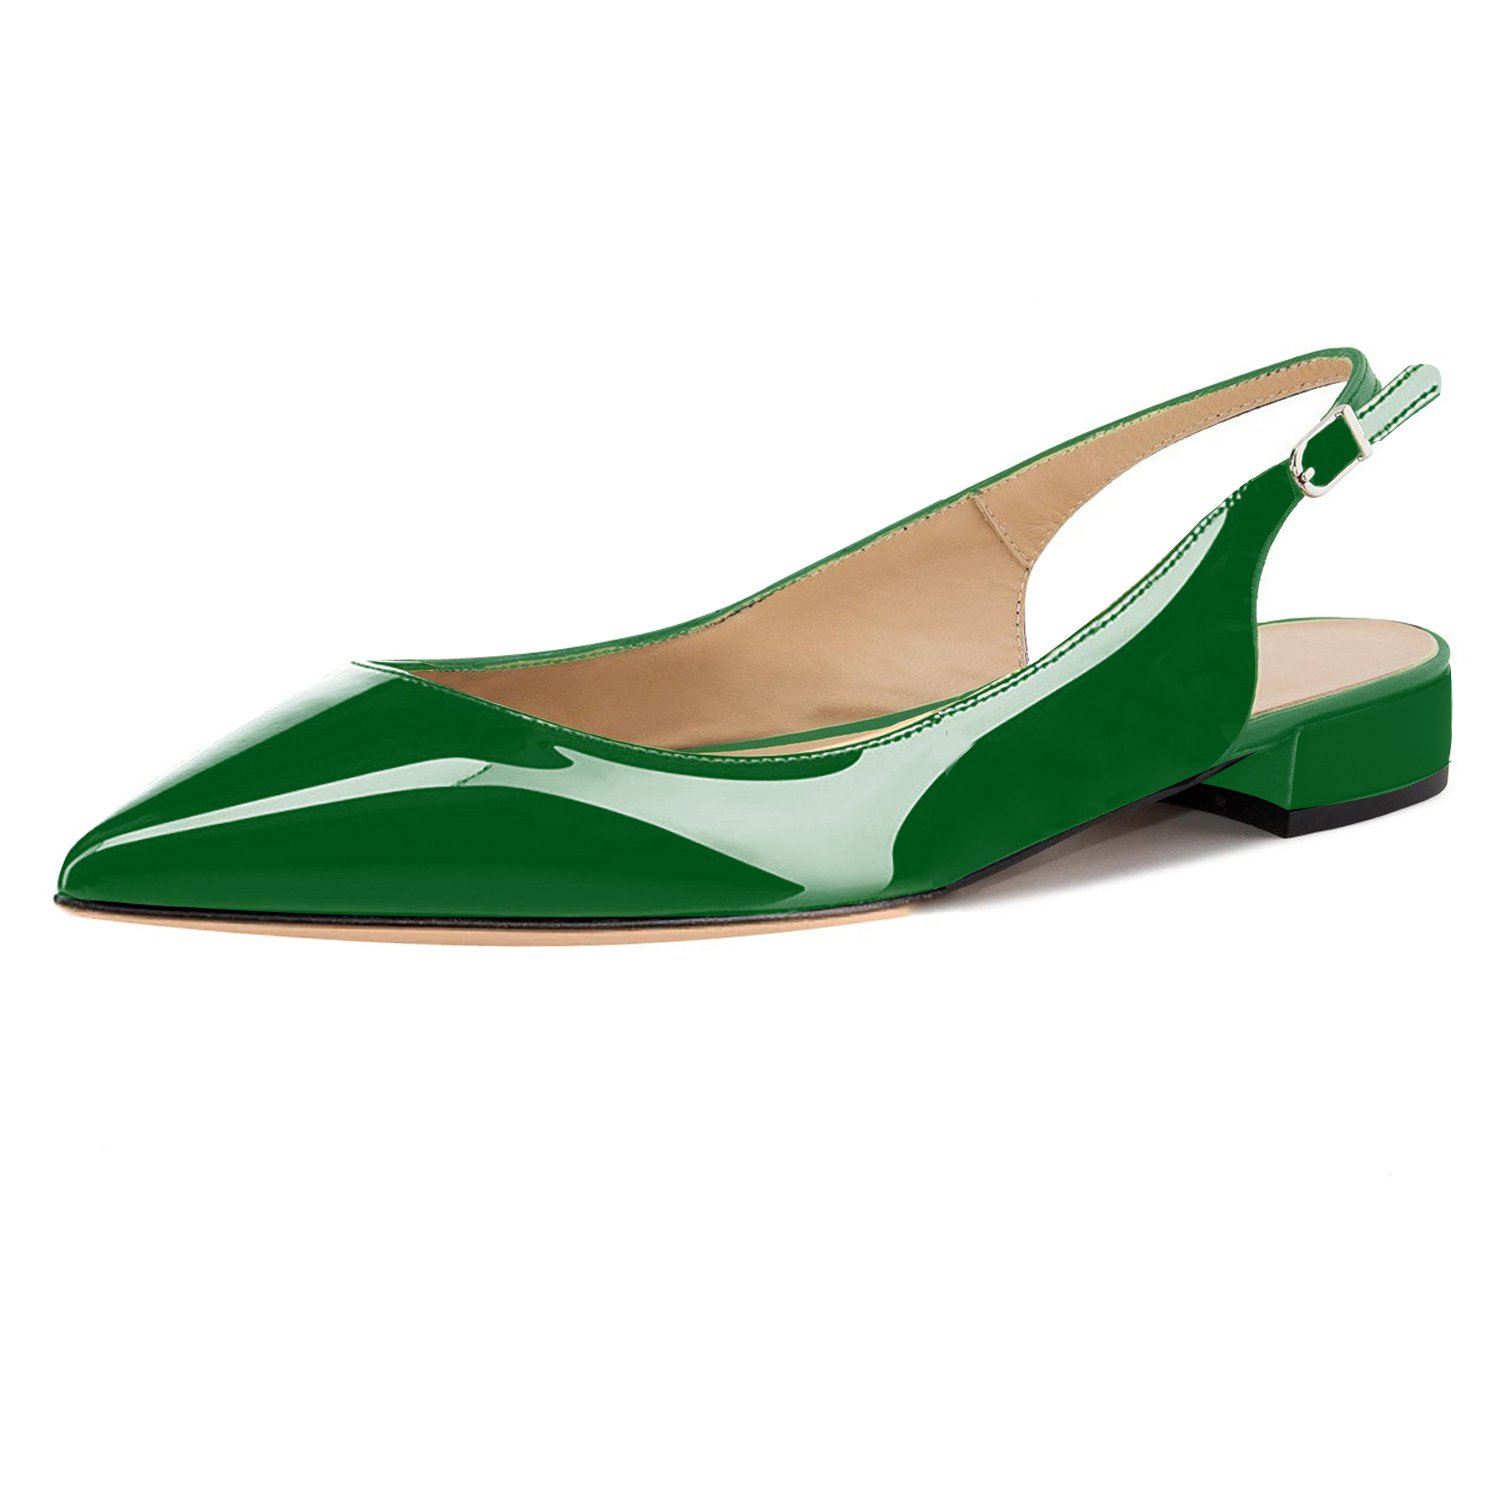 Eldof Women Low Heels Pumps | Pointed Toe Slingback Flat Pumps | 2cm Classic Elegante Court Shoes B07C51ZY2G 7 B(M) US|Patent Green